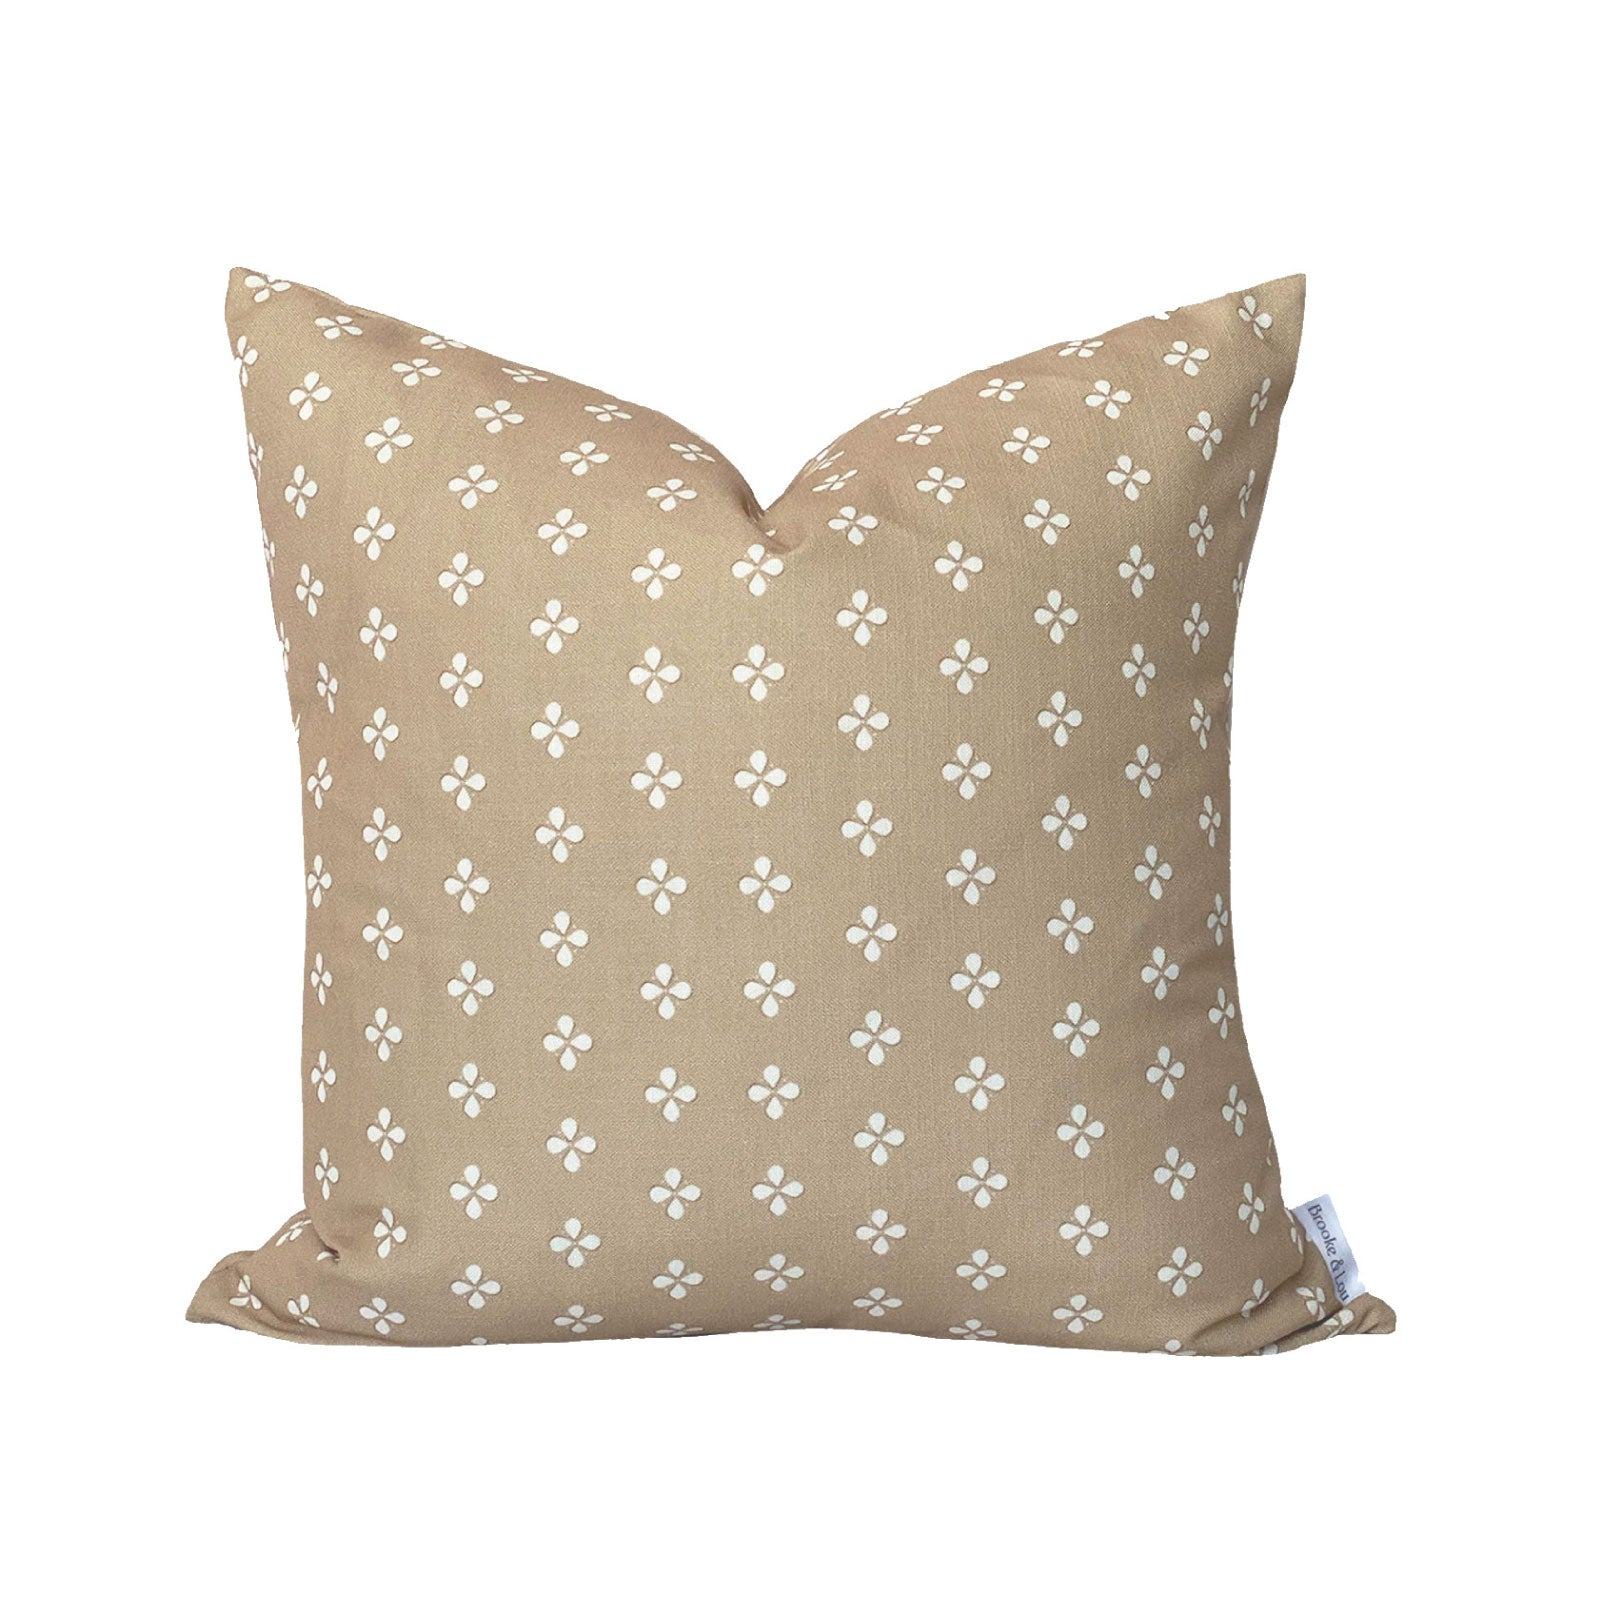 Ditzy Print Pillow in Camel